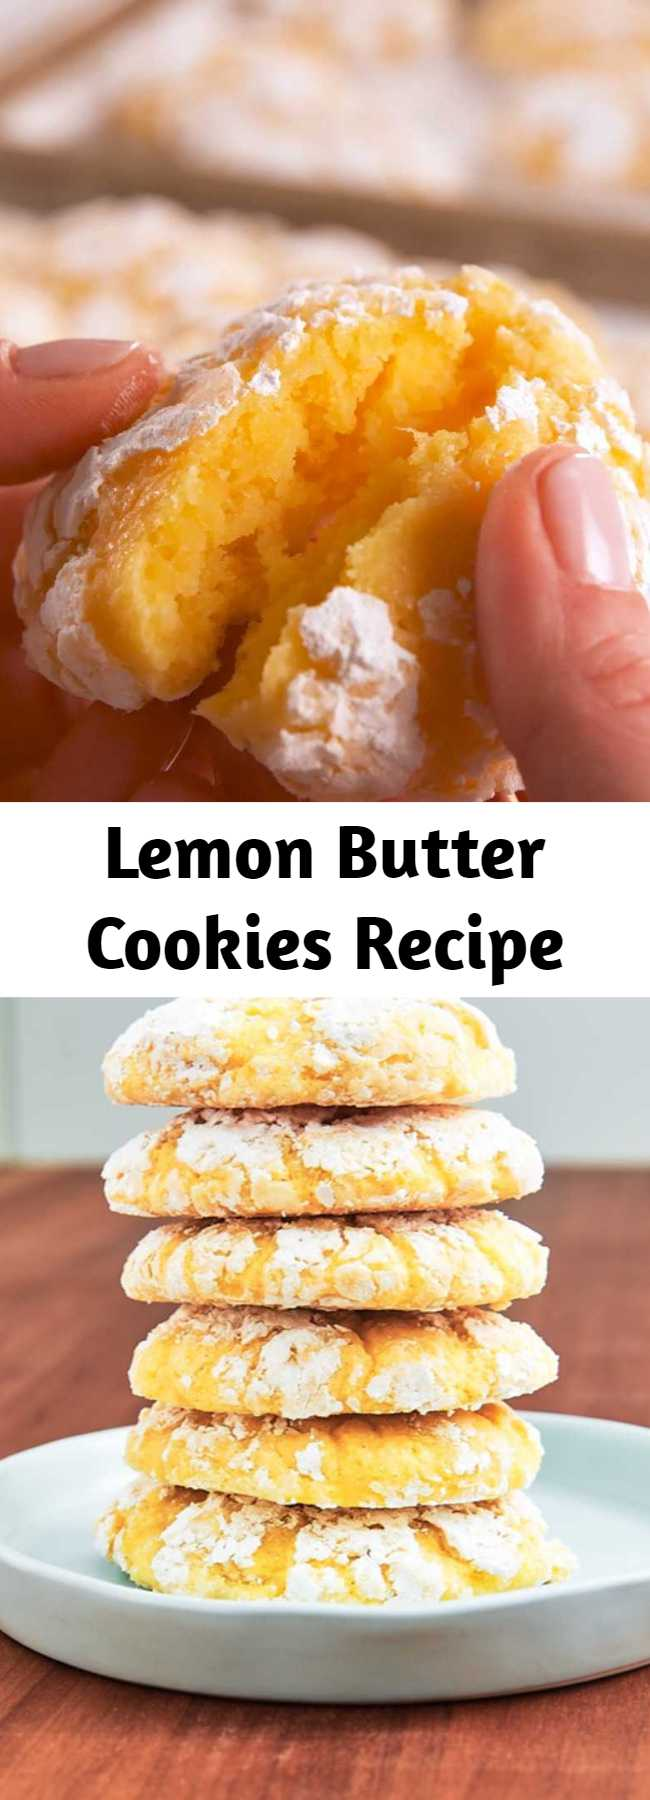 Lemon Butter Cookies Recipe - These cookies have the perfect balance of sweet and tart. It's the treat to make any day a little better. #easy #recipe #lemon #butter #cookies #lemonbuttercookies #springdesserts #dessertideas #dessert